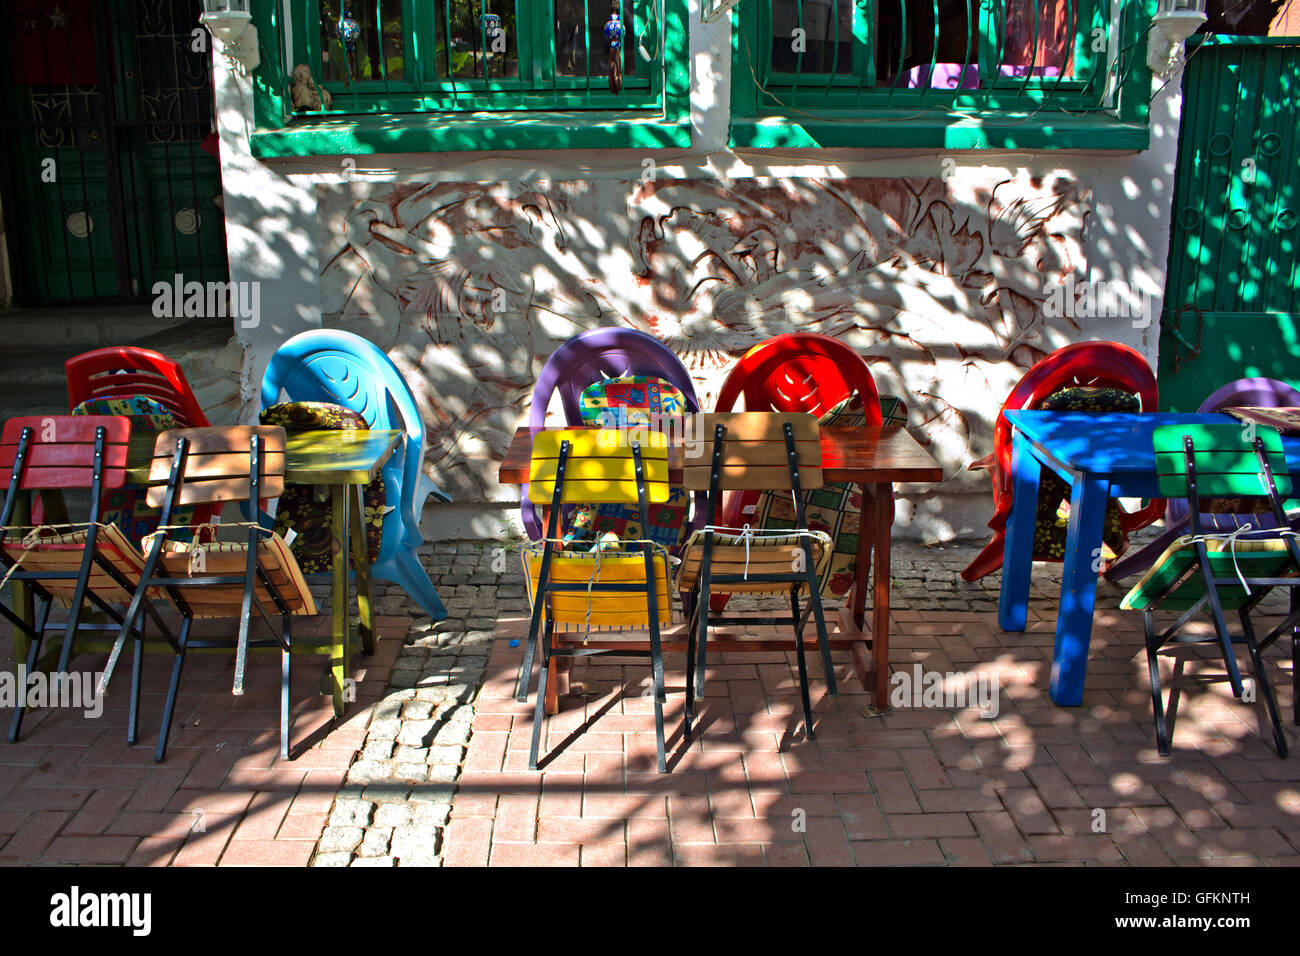 Colorful Table And Chairs In A Street Cafe Stock Photo Alamy